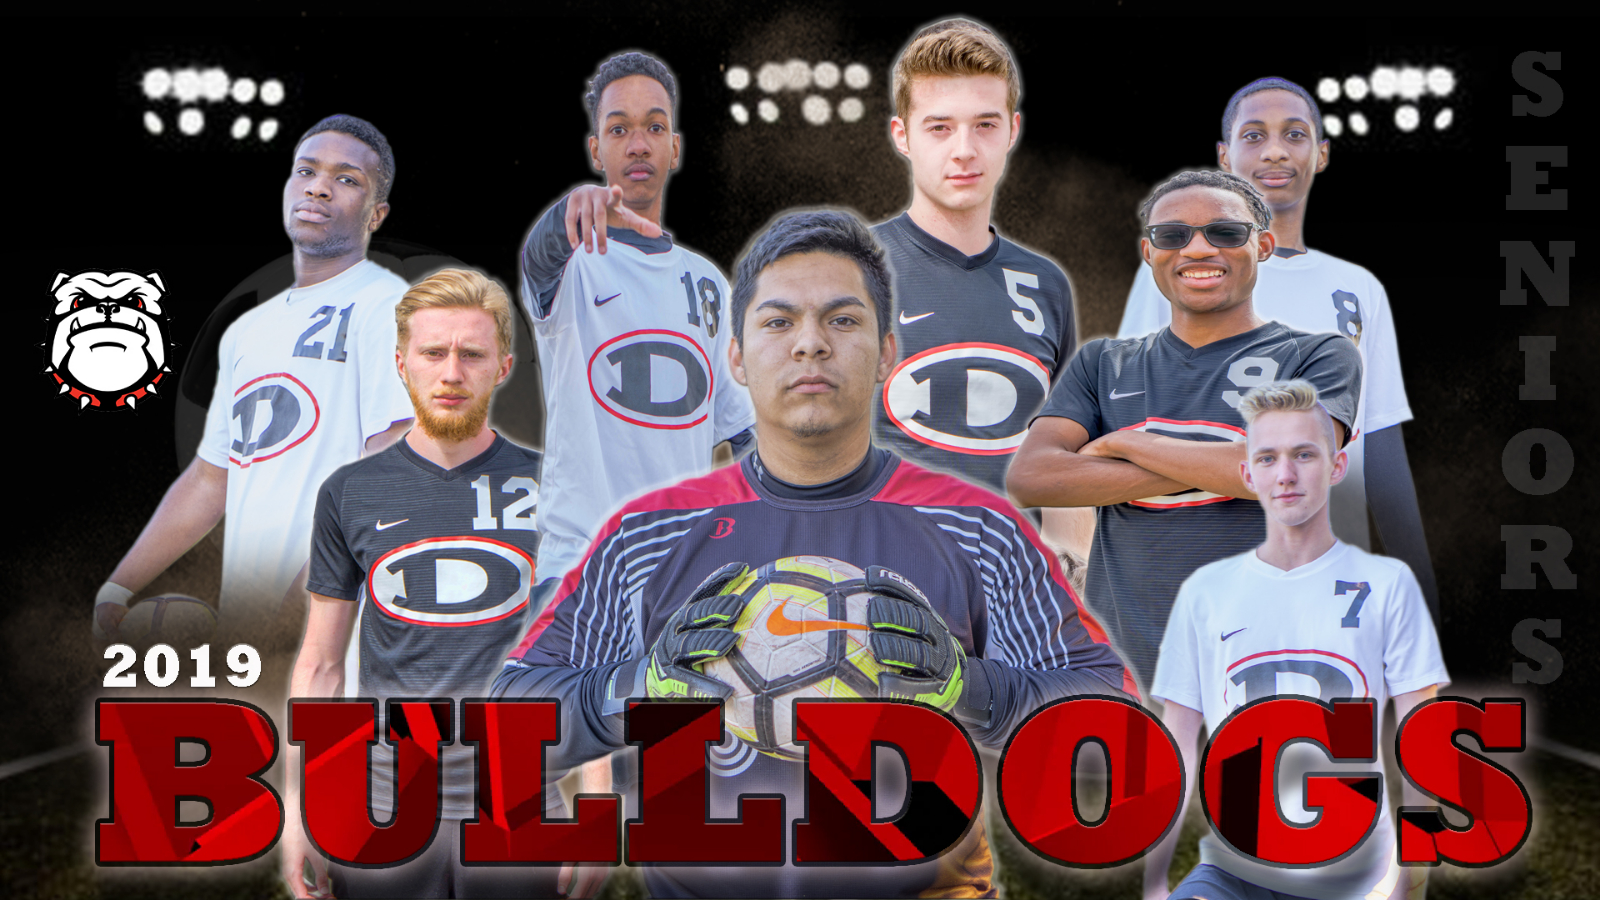 Dutchtown boys' soccer is headed to the state playoffs!